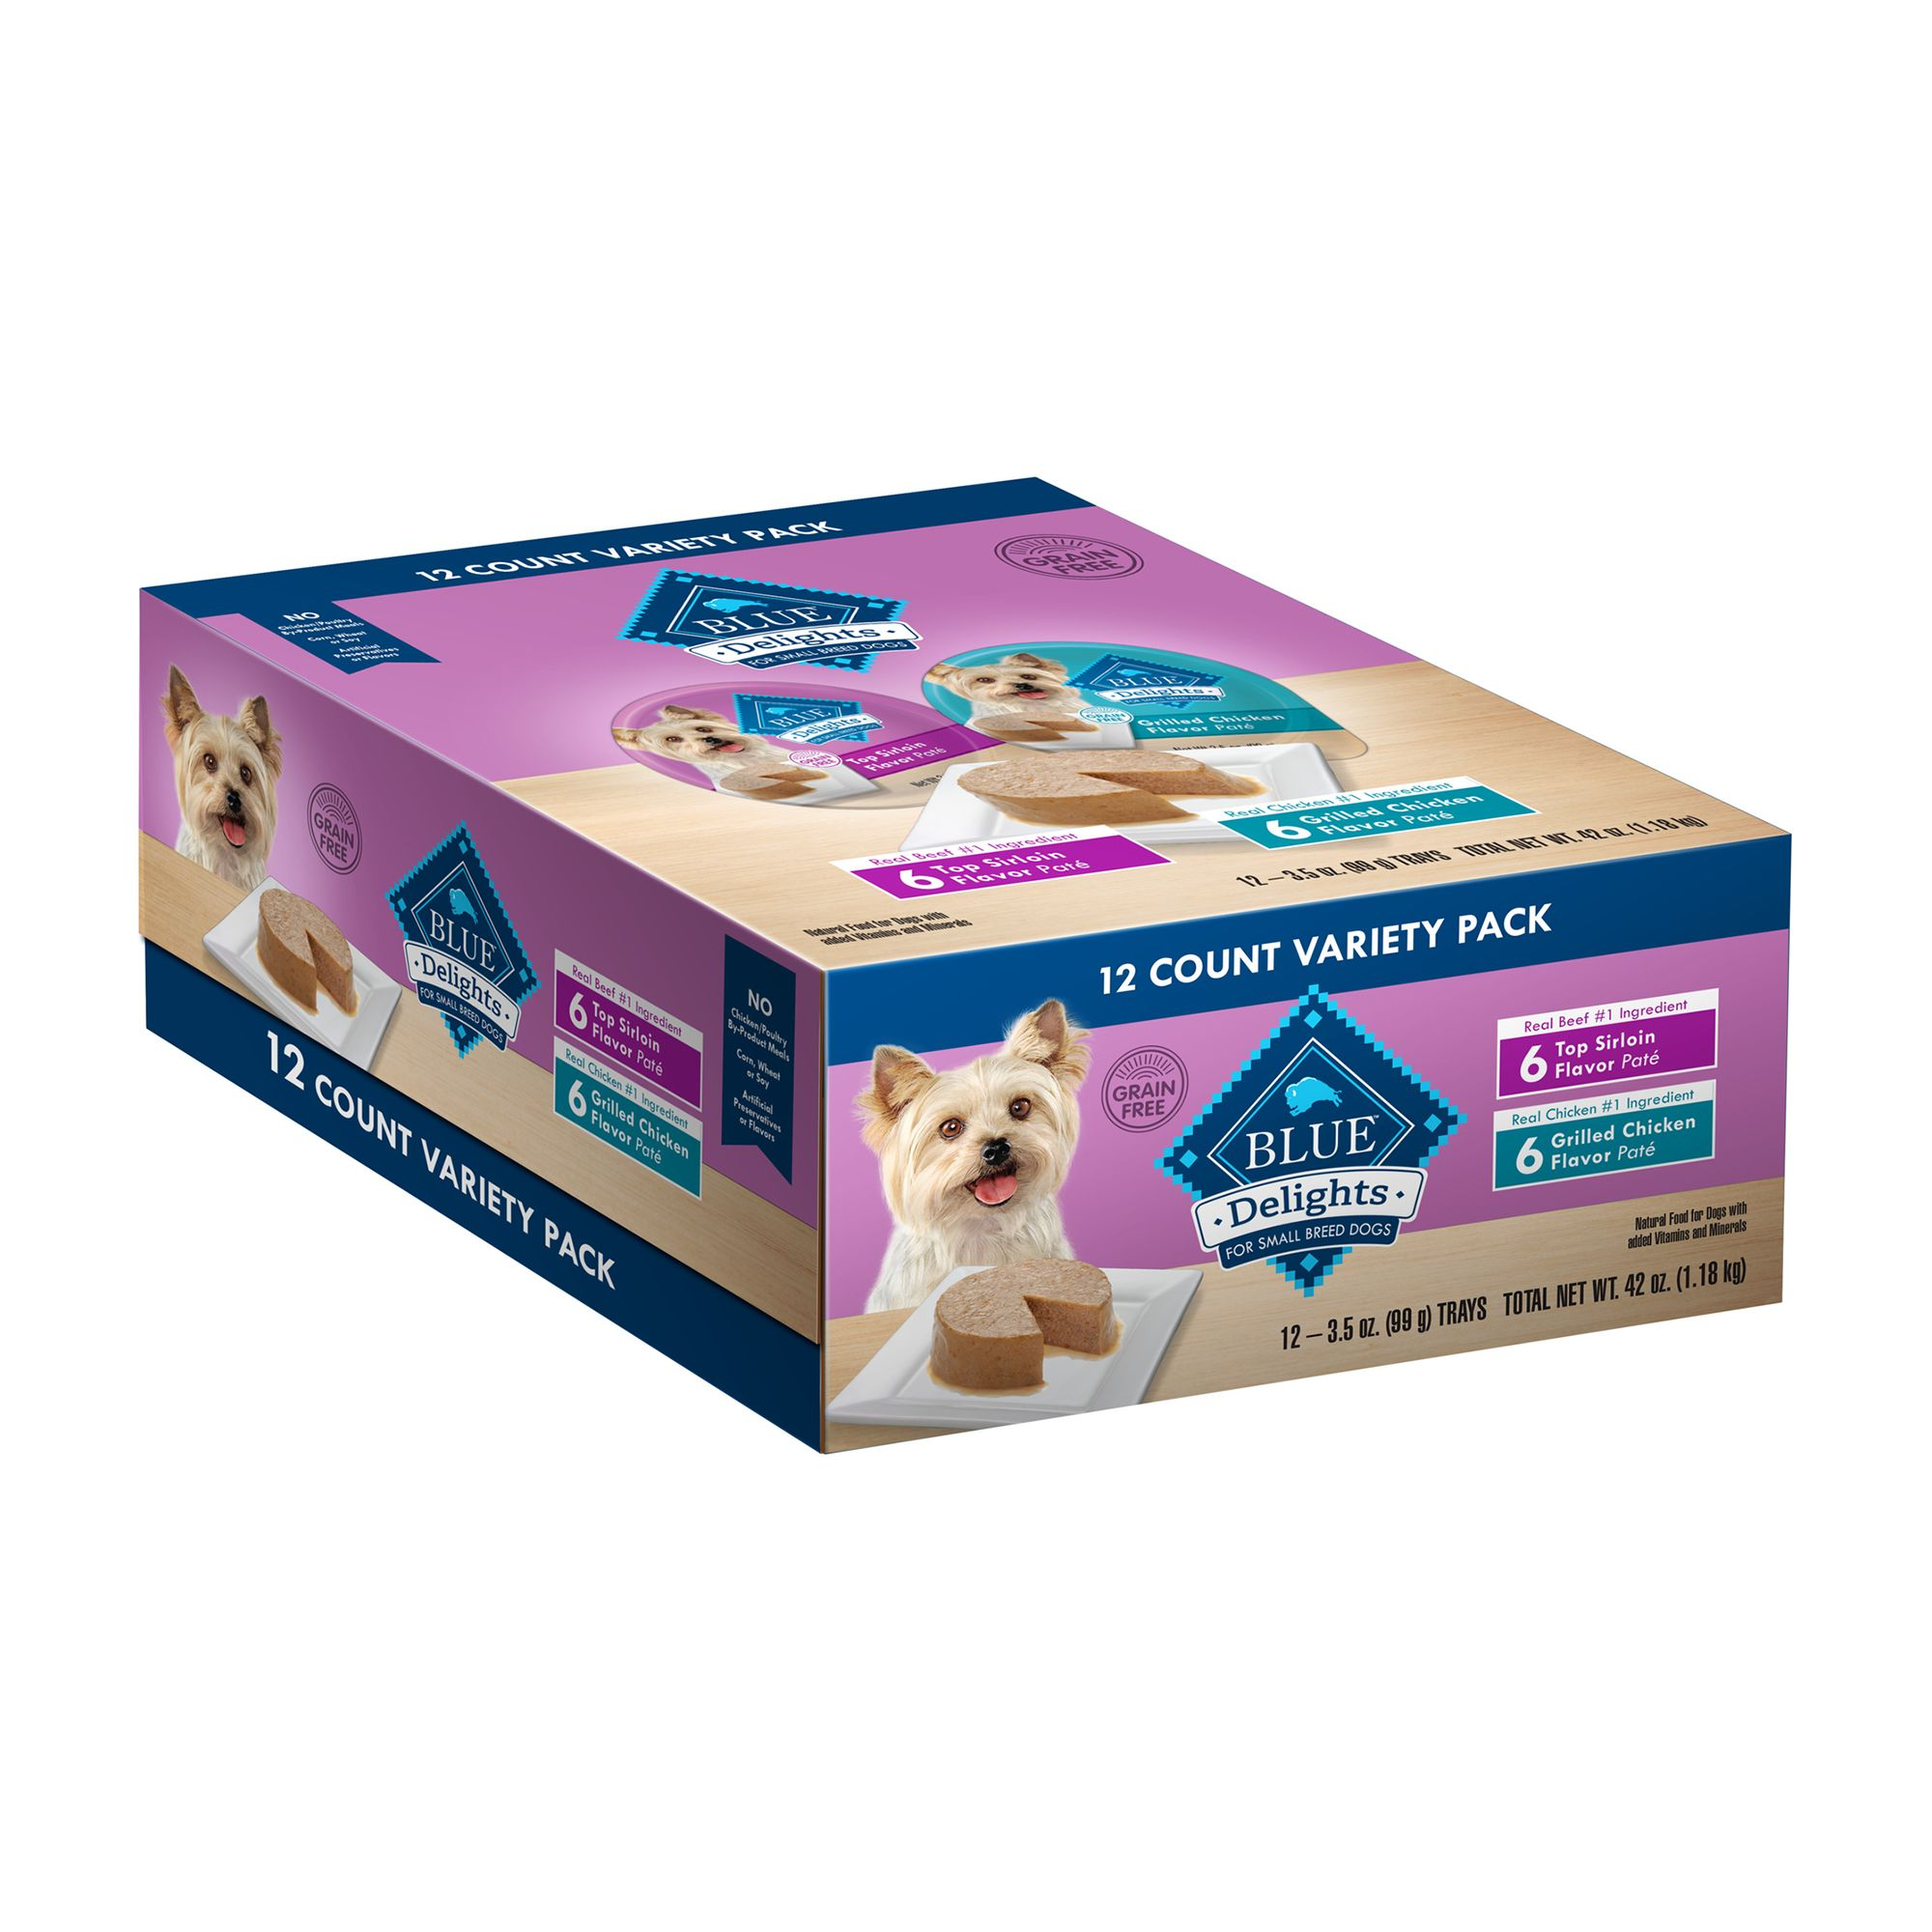 Blue Divine Delights, Dog Food - Natural, Variety Pack, 12ct